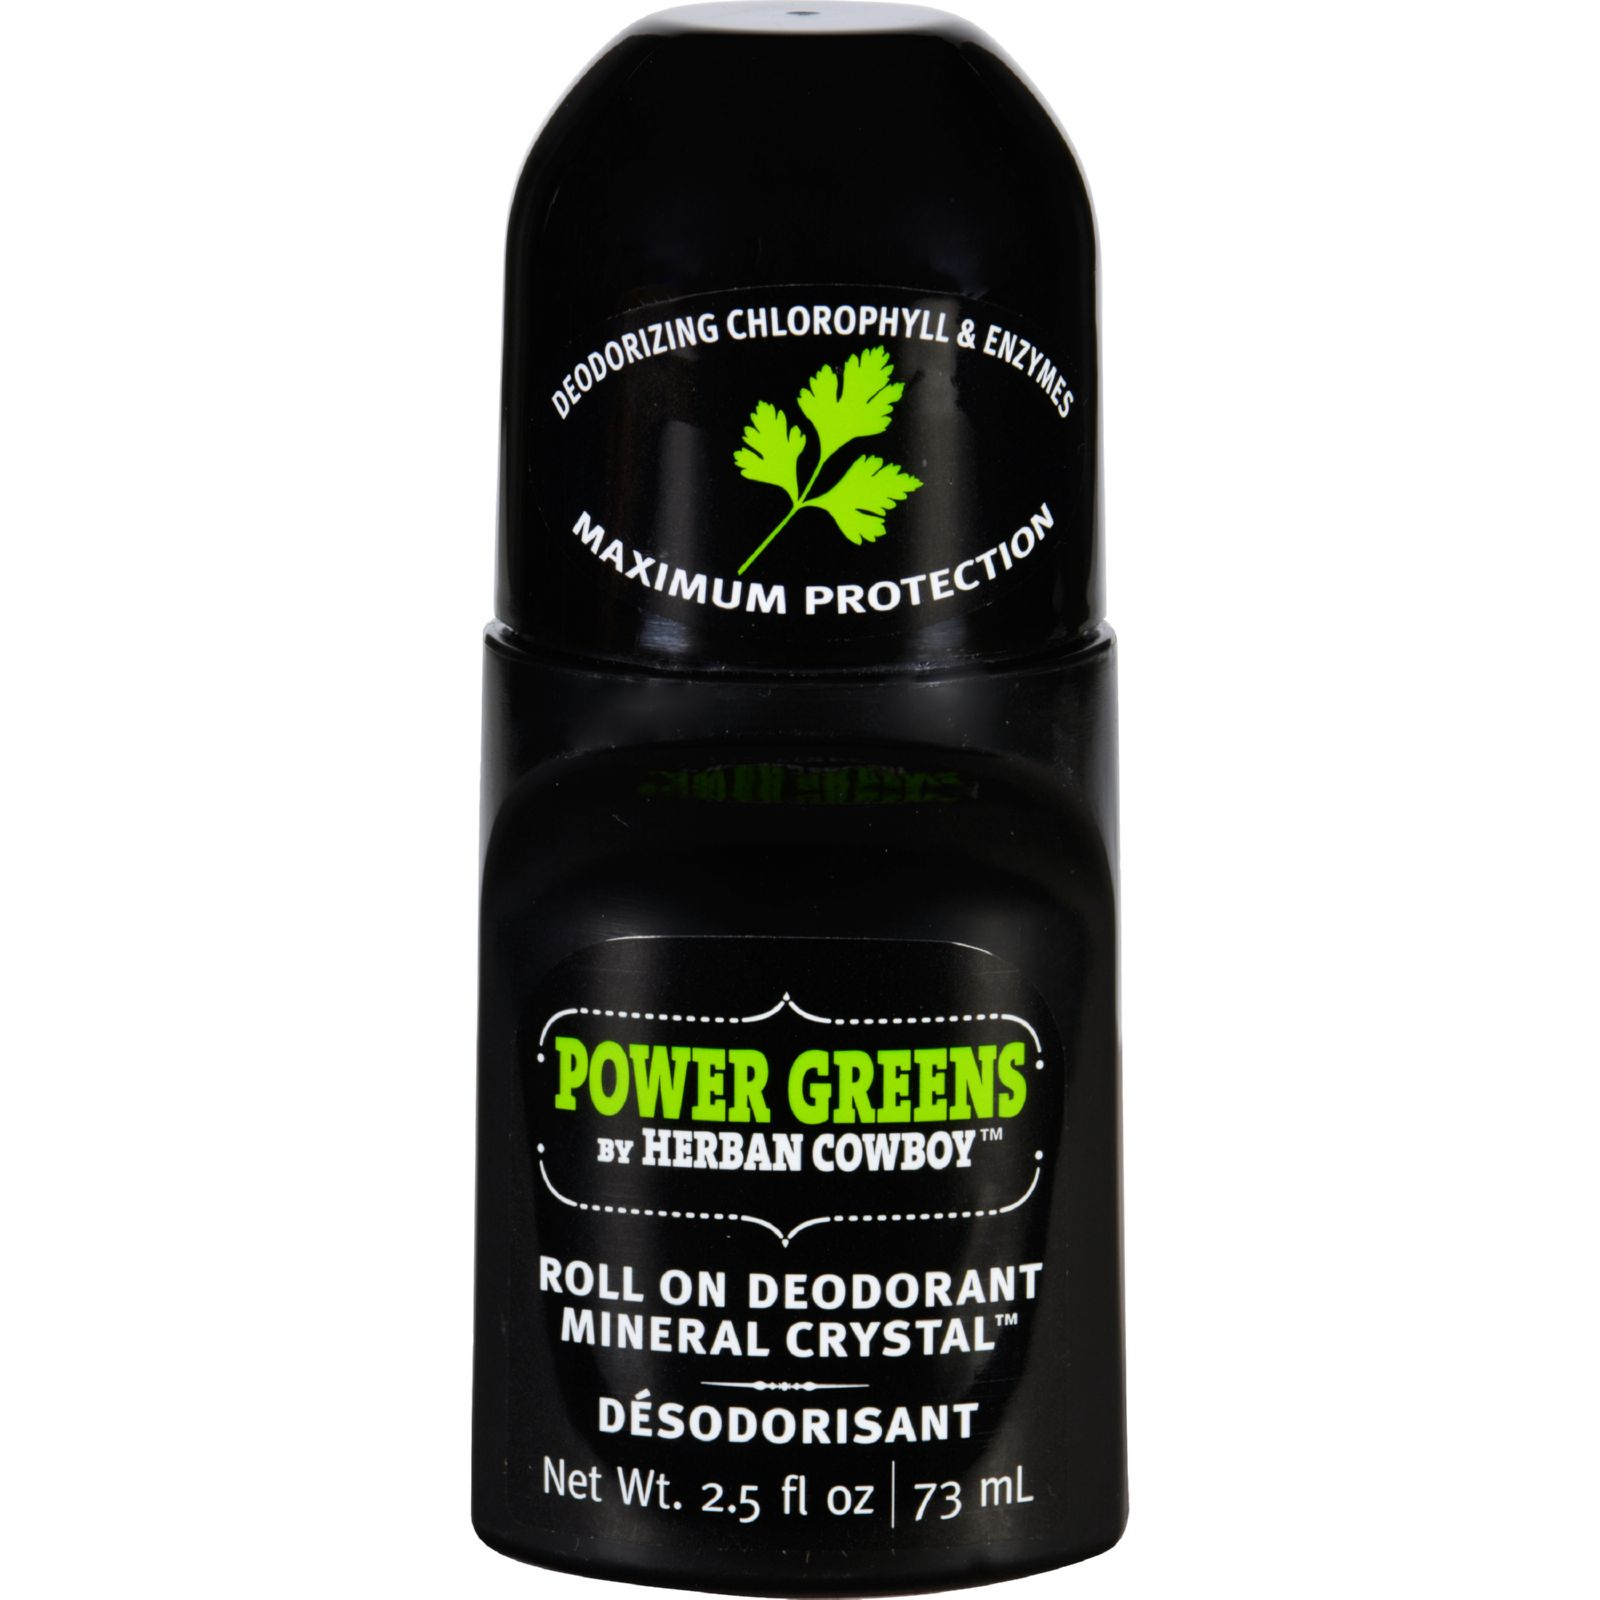 Herban Cowboy Deodorant - Roll On - Power Greens - 2.5 Oz